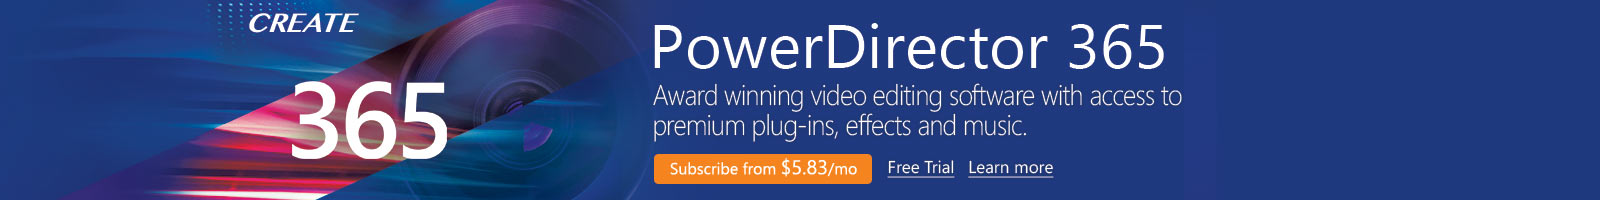 Download Video Effects, Footage & Effects|DirectorZone